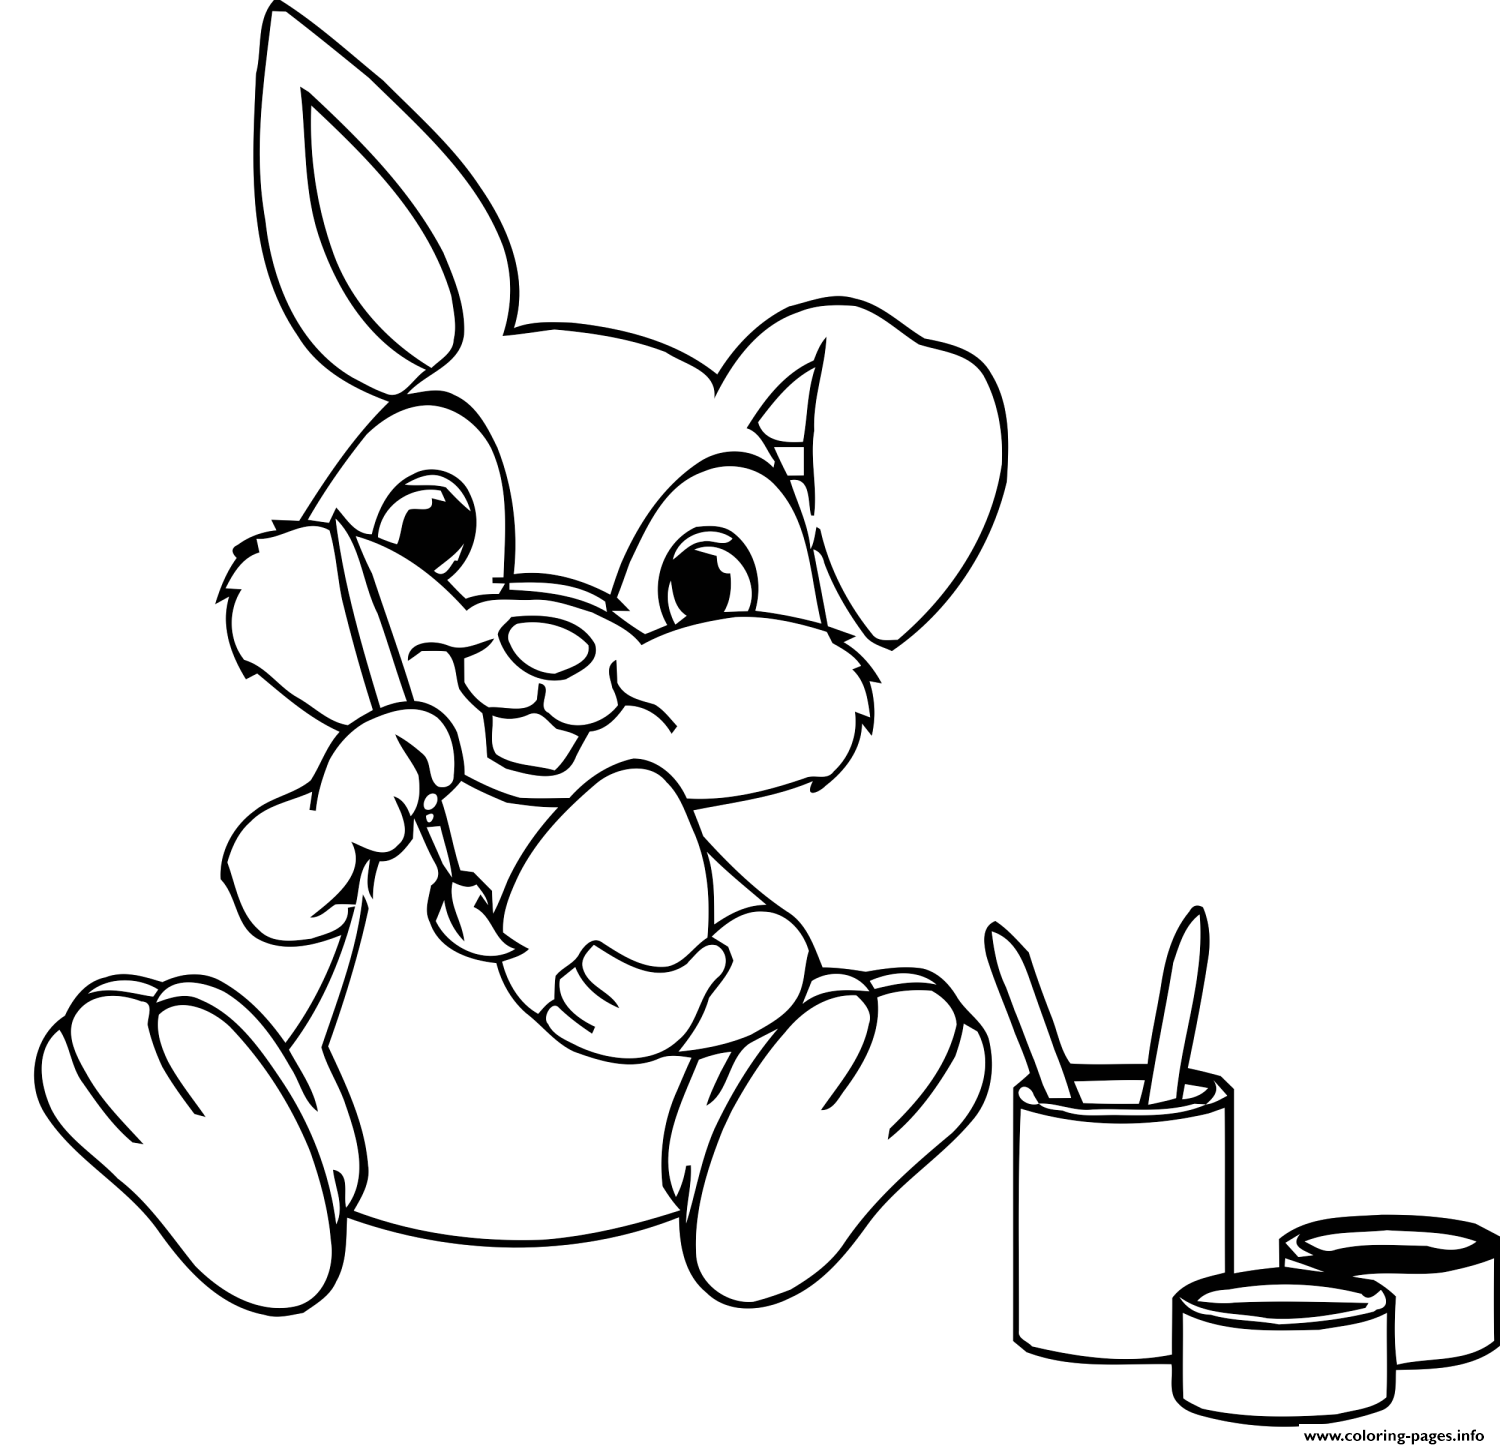 Easter Bunny Paint Eggs Coloring Pages Printable